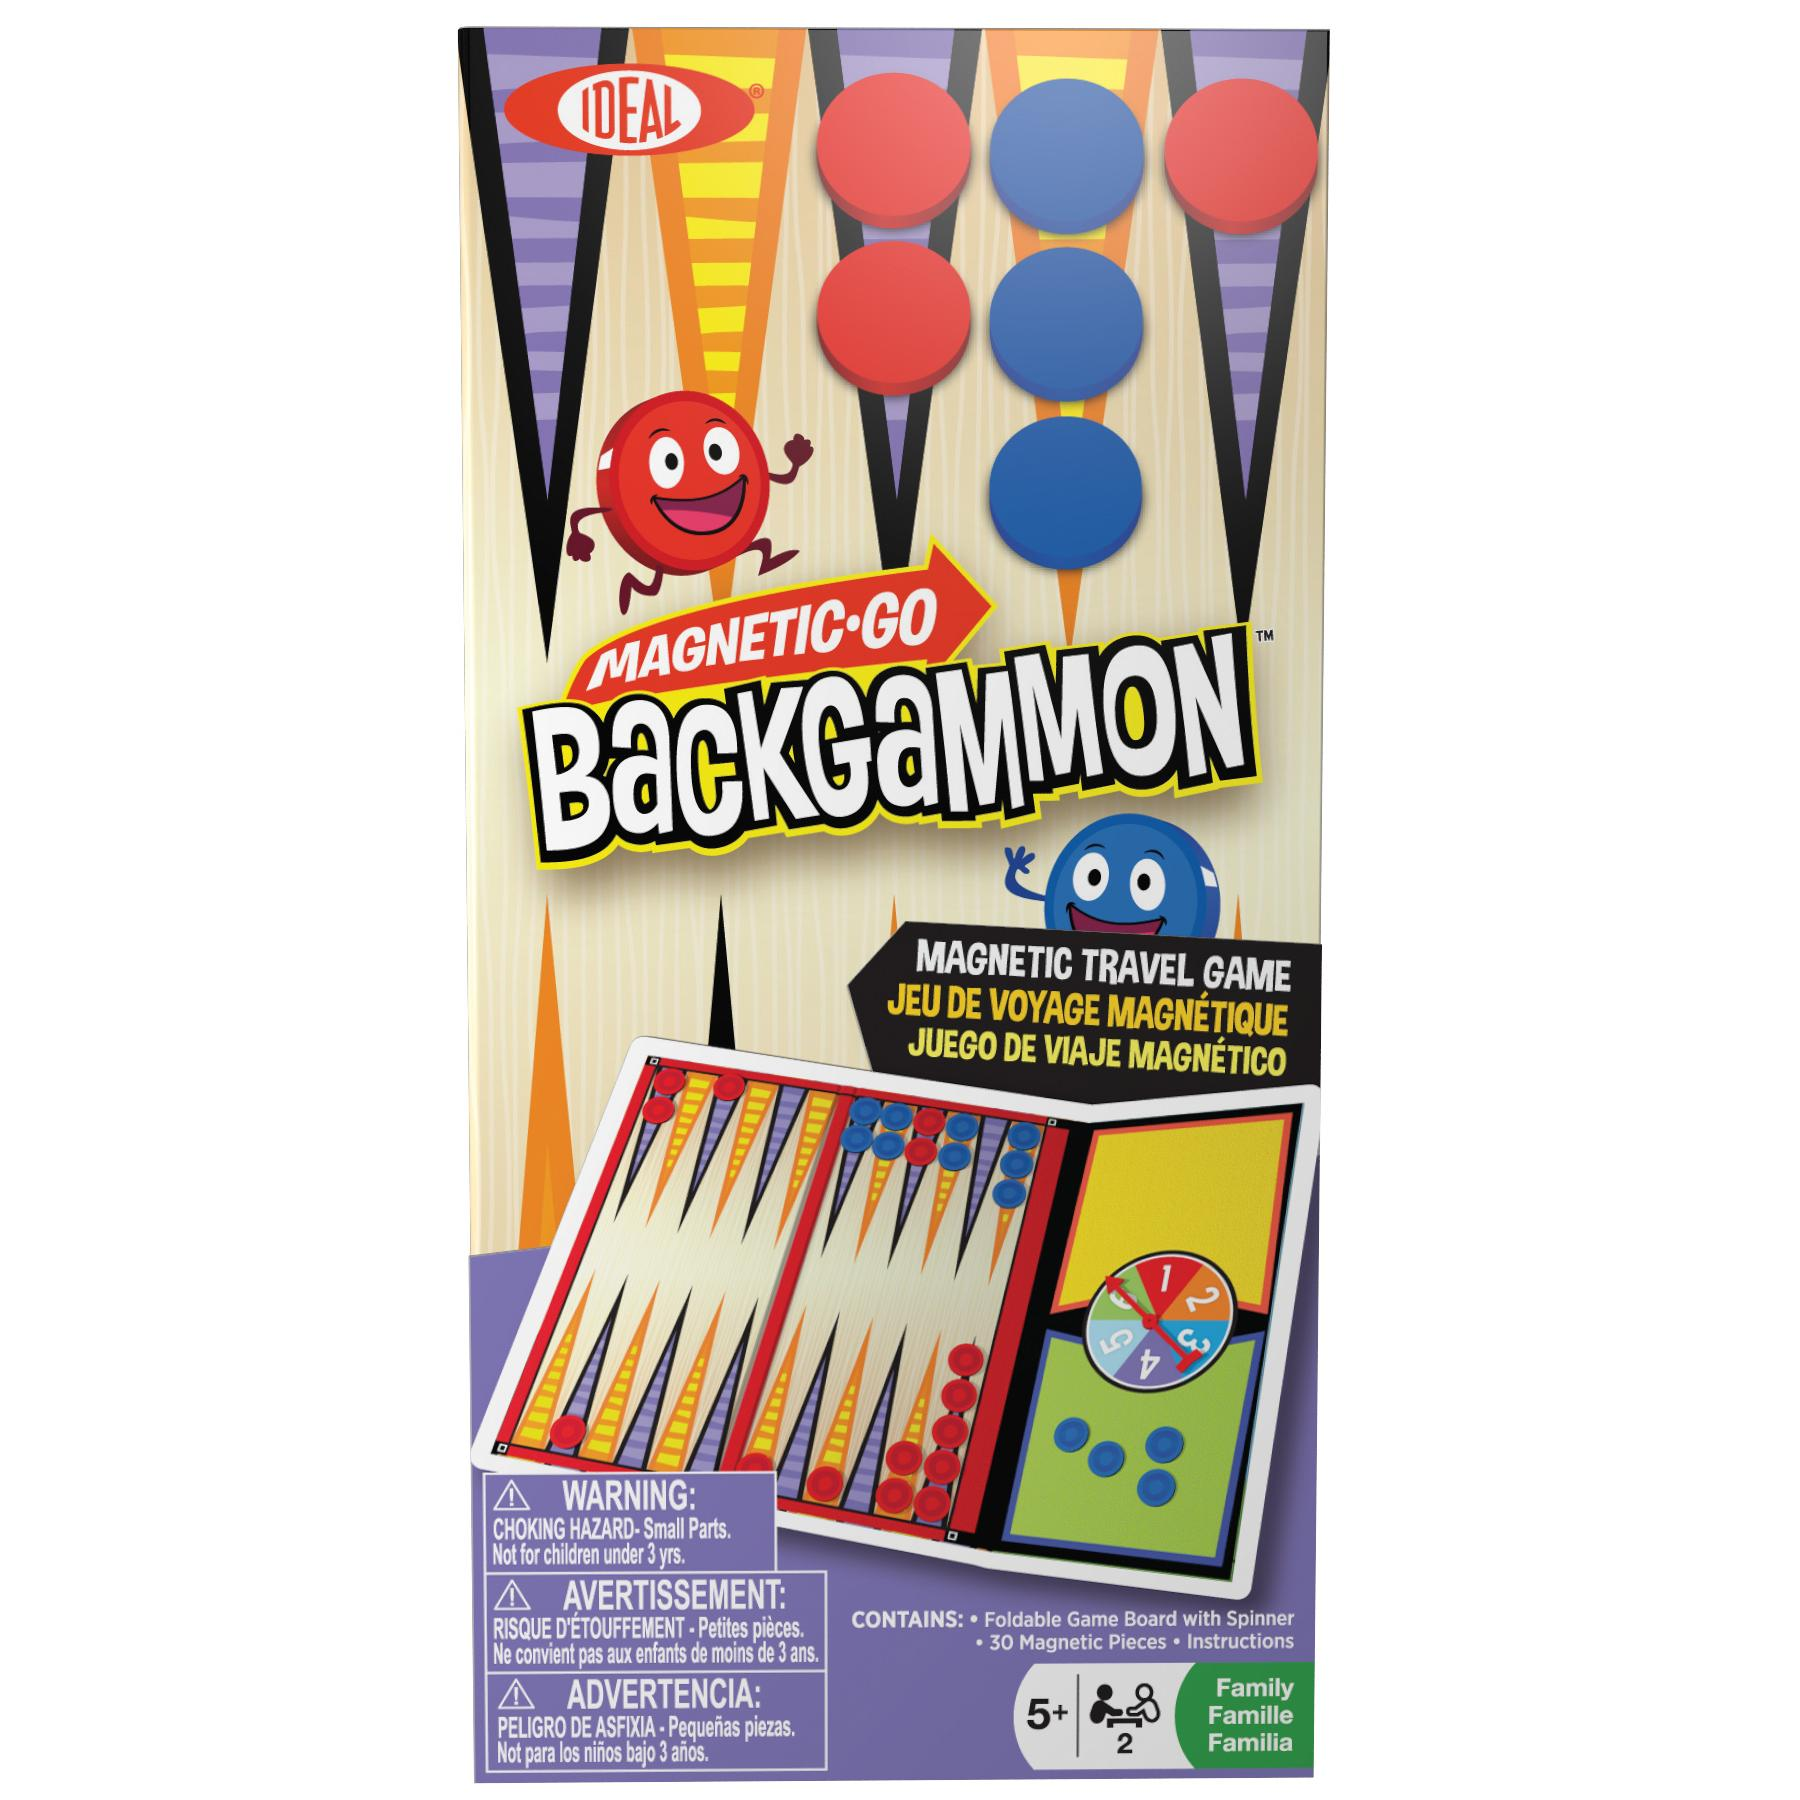 8-32507TL Poof Slinky Board Game Magnetic-Go Backgammon Game